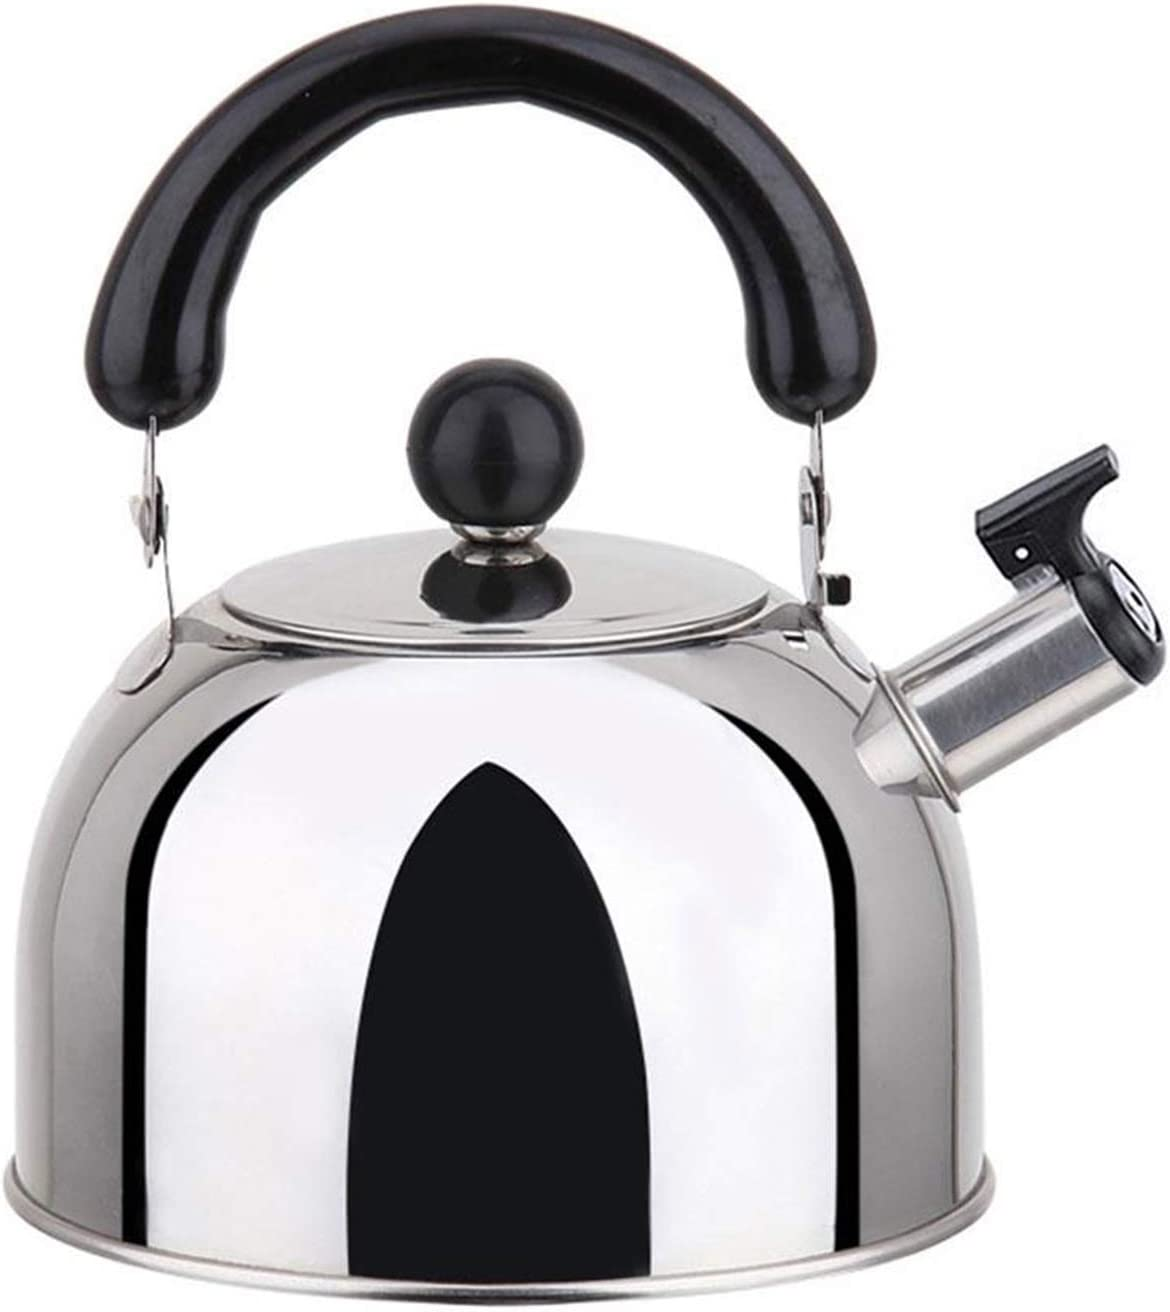 Stainless Steel Whistling Tea Kettle Ergonomic Special price for a famous limited time Handle Suitable